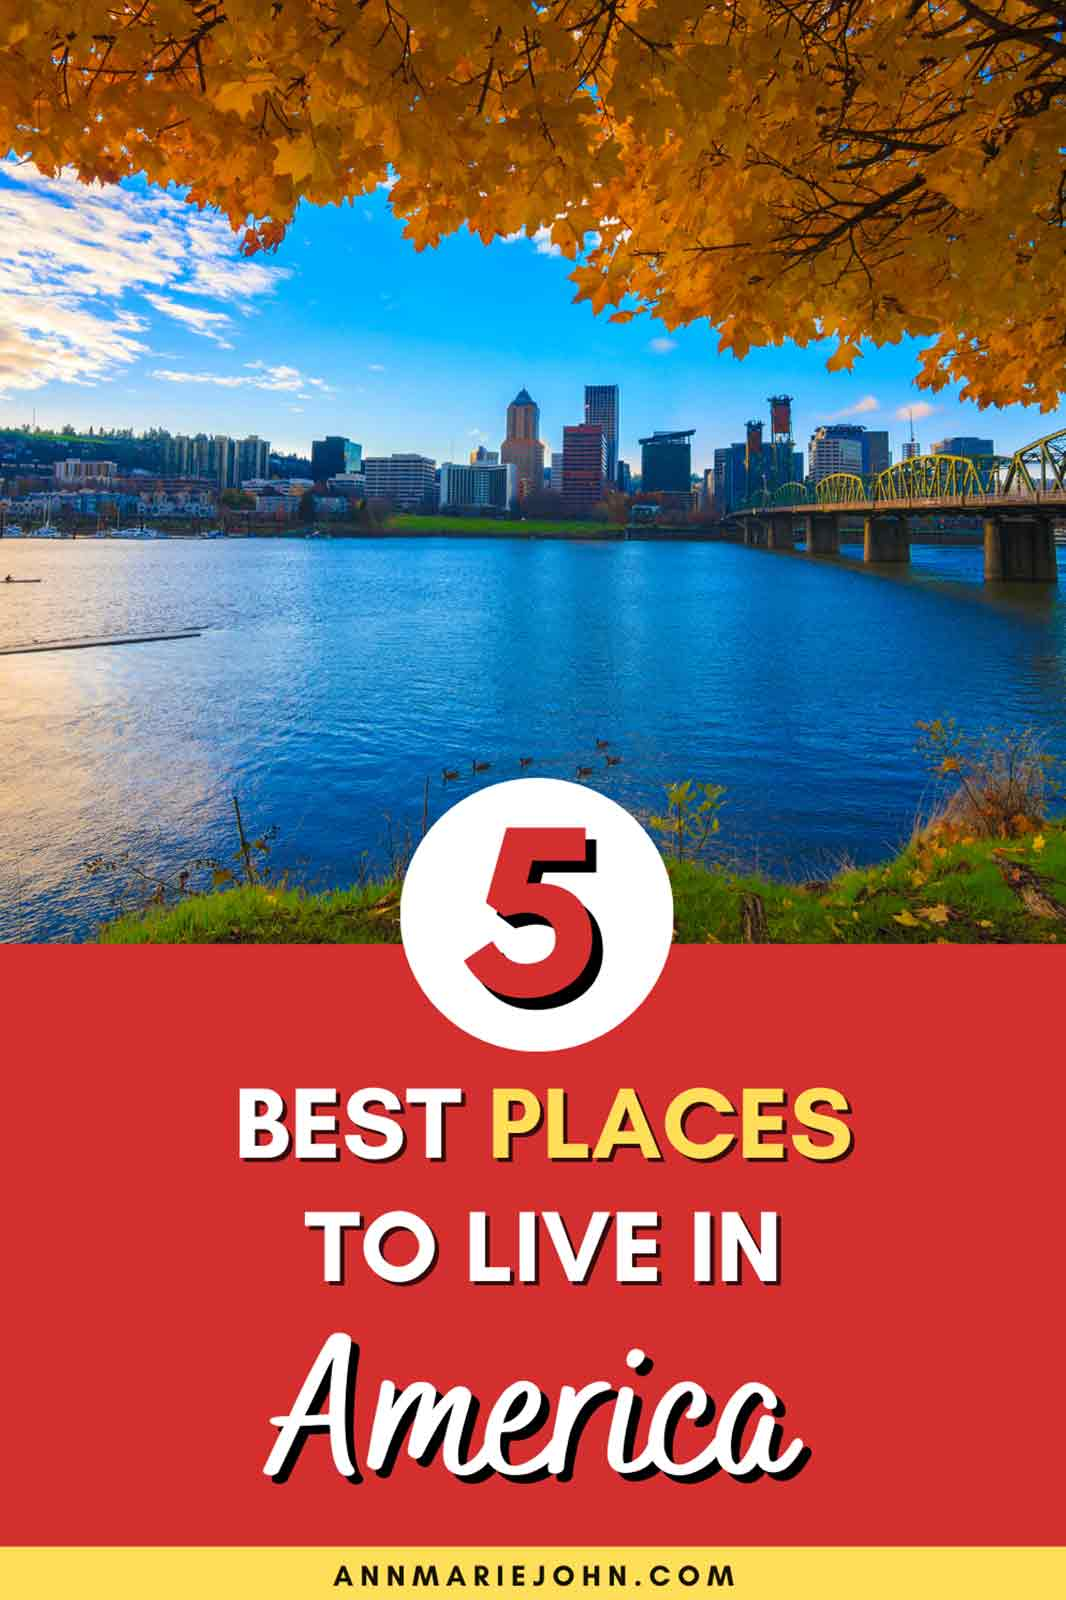 The Best Places to Live in America